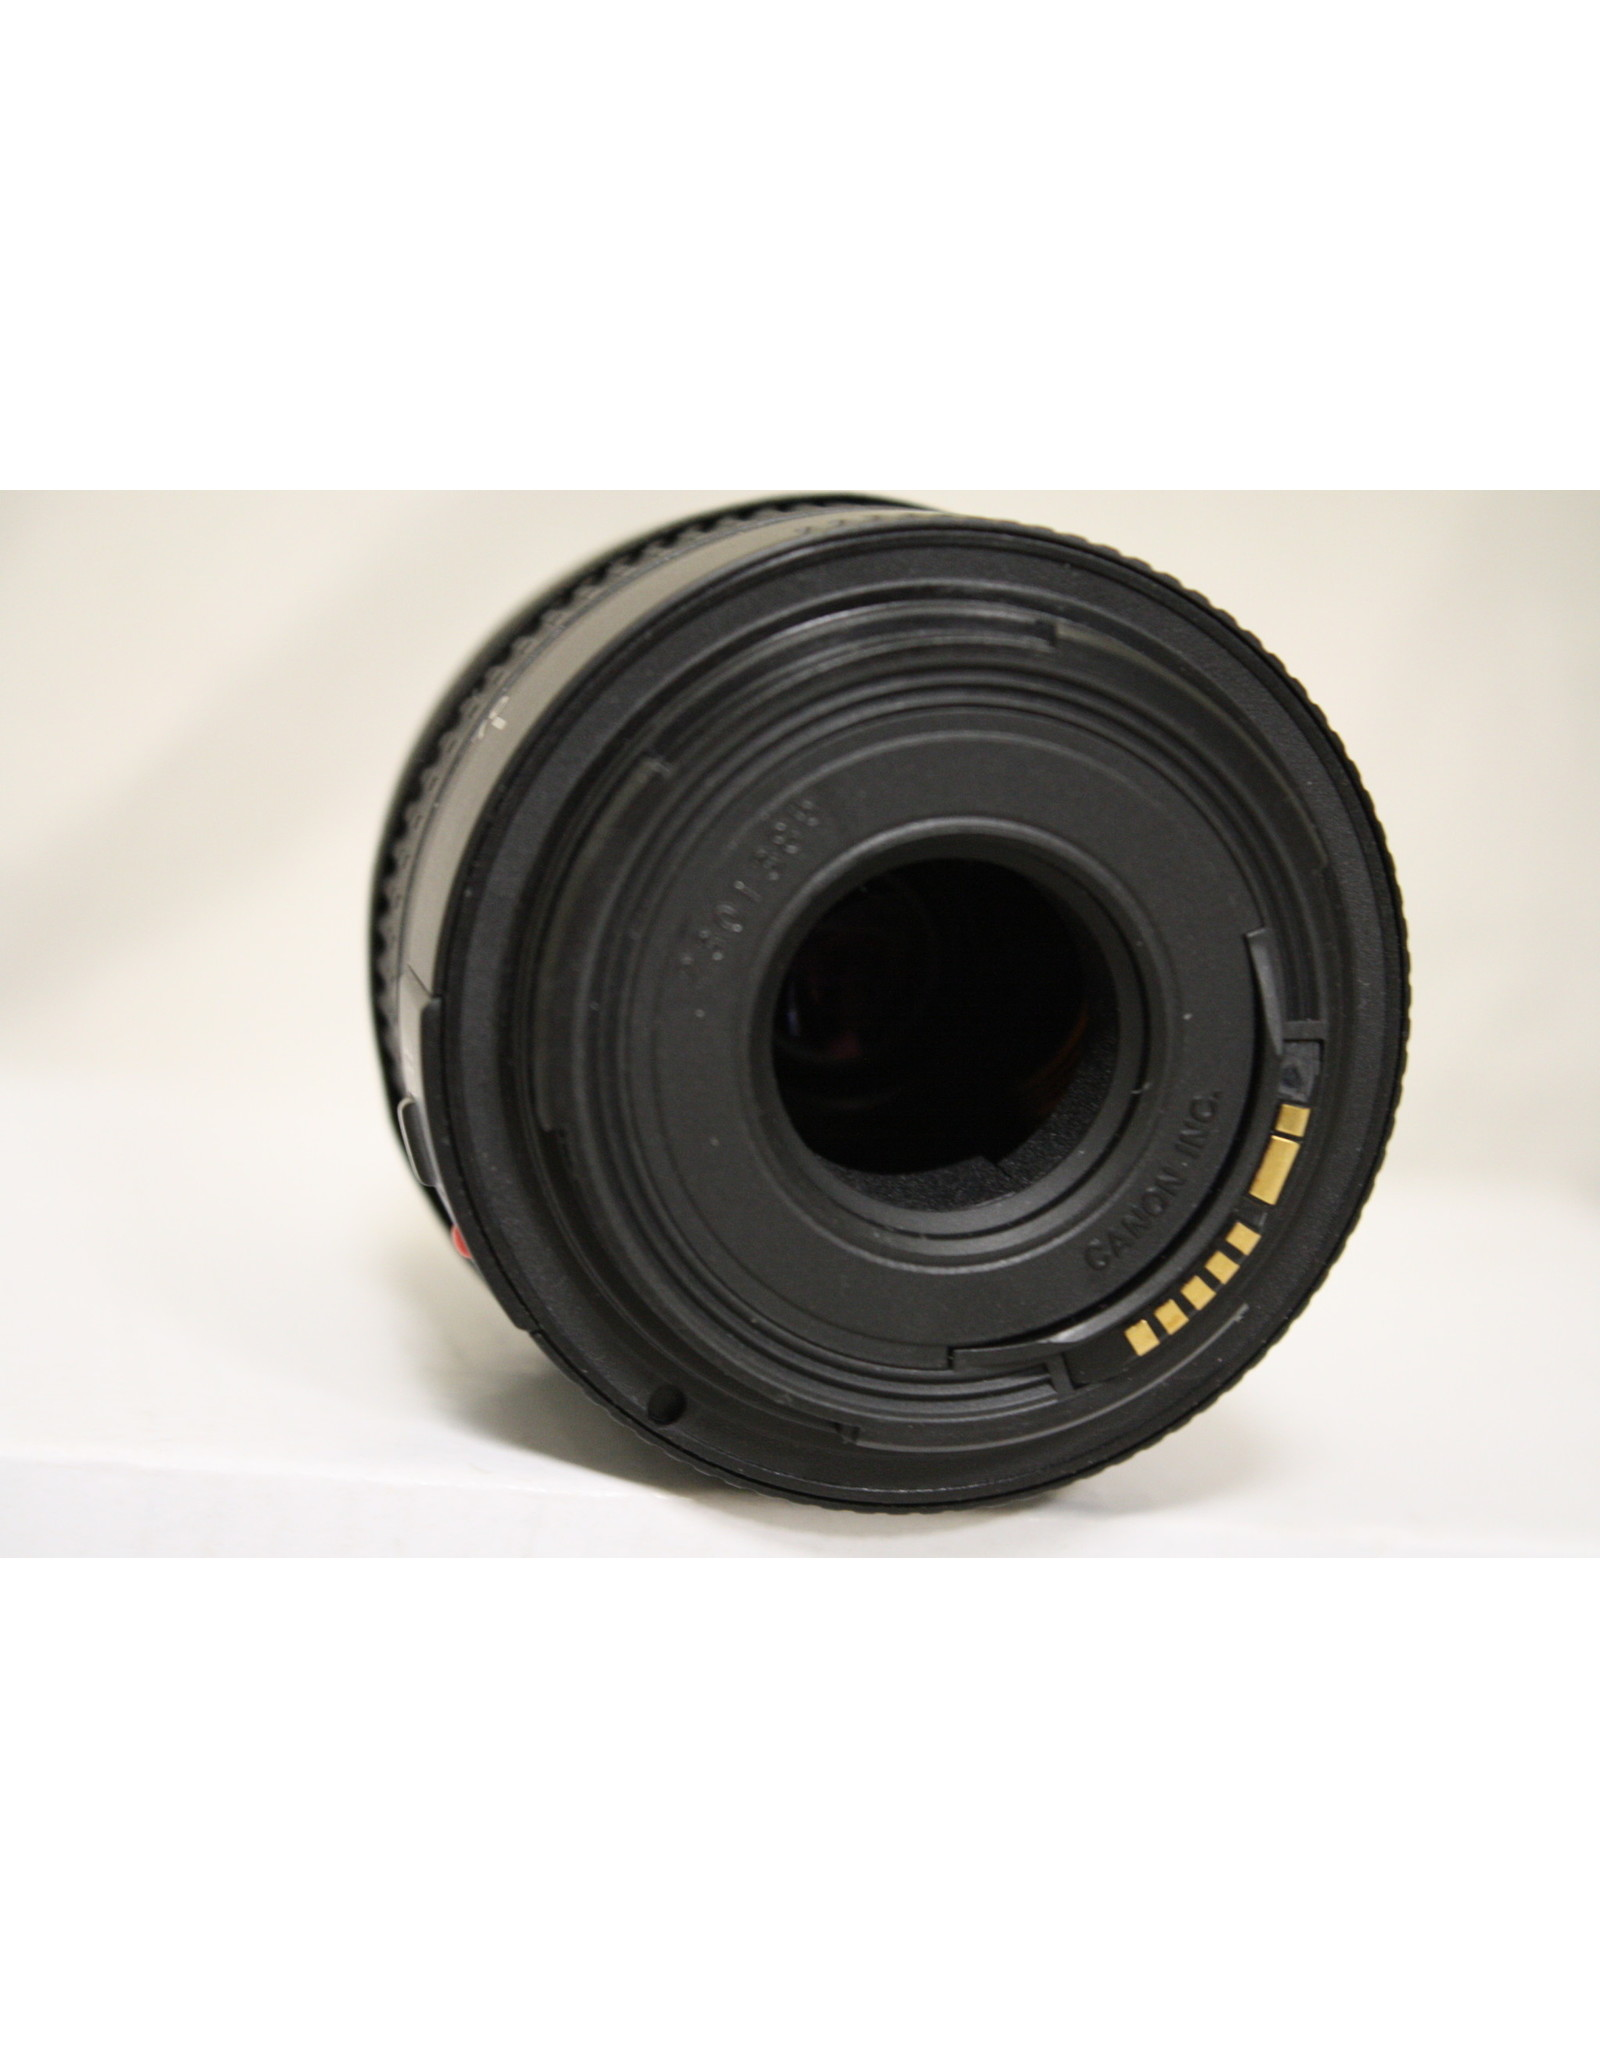 CANON 38-76mm 4.5-5.6 Zoom Lens for CANON EOS EF SLR DSLR (Pre-owned)